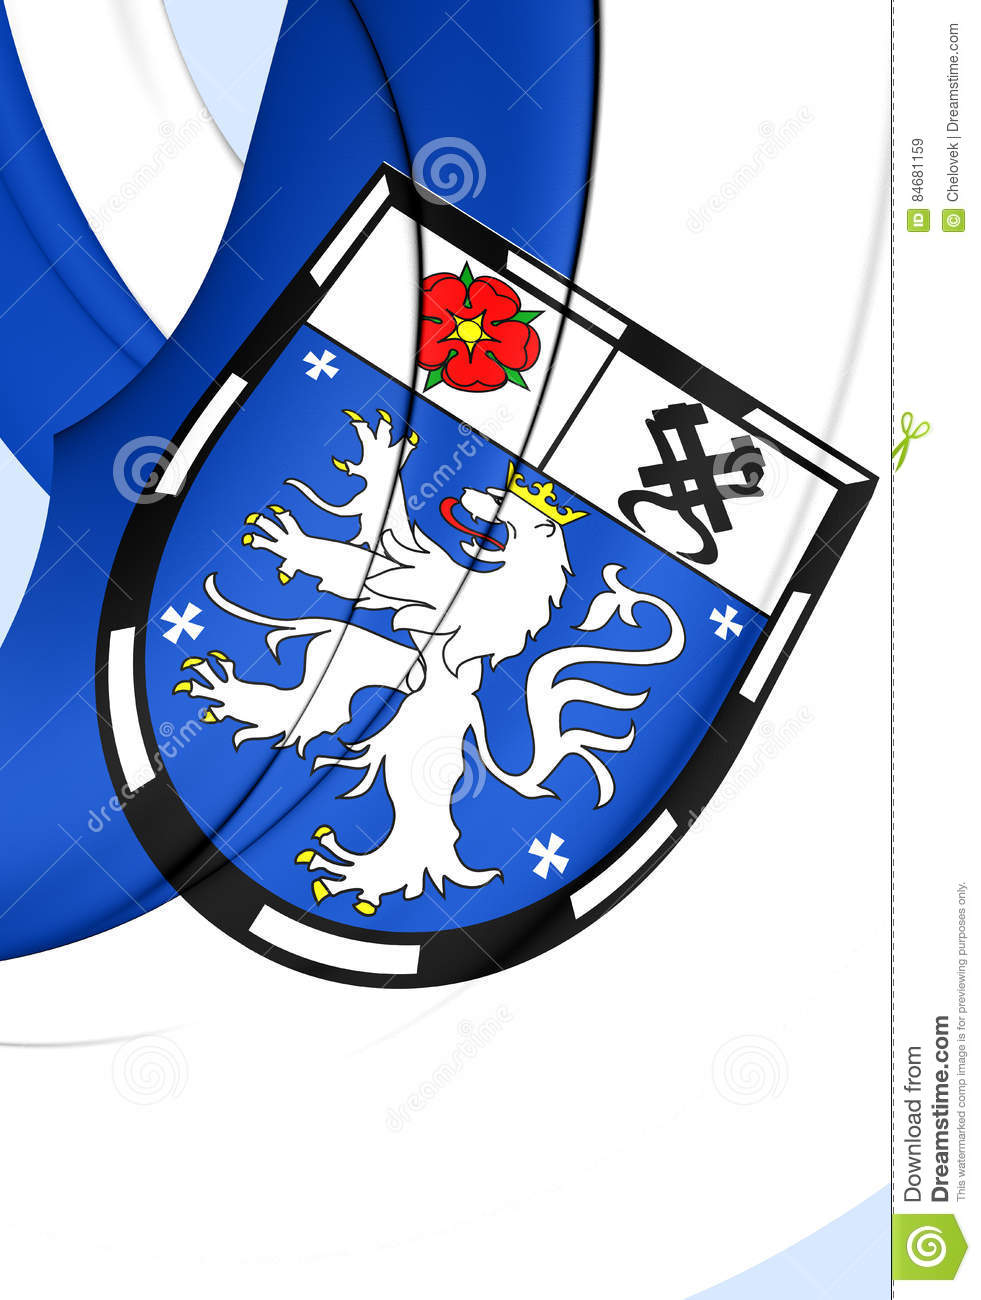 Flag Of Saarbrucken City, Germany. Stock Illustration.